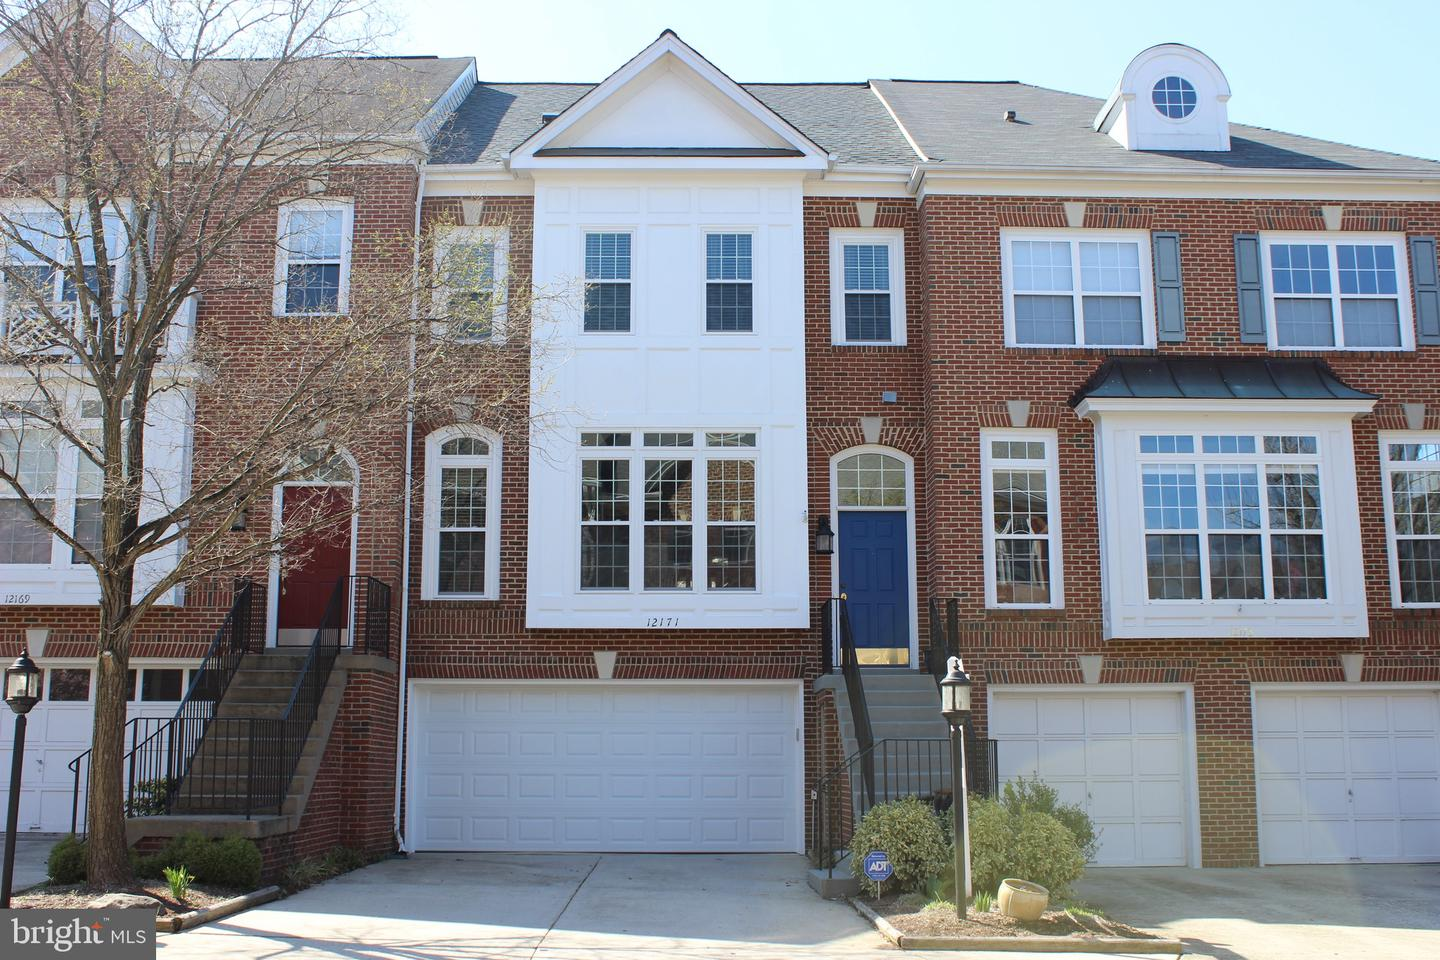 Additional photo for property listing at 12171 Tryton Way Reston, Virginia 20190 United States